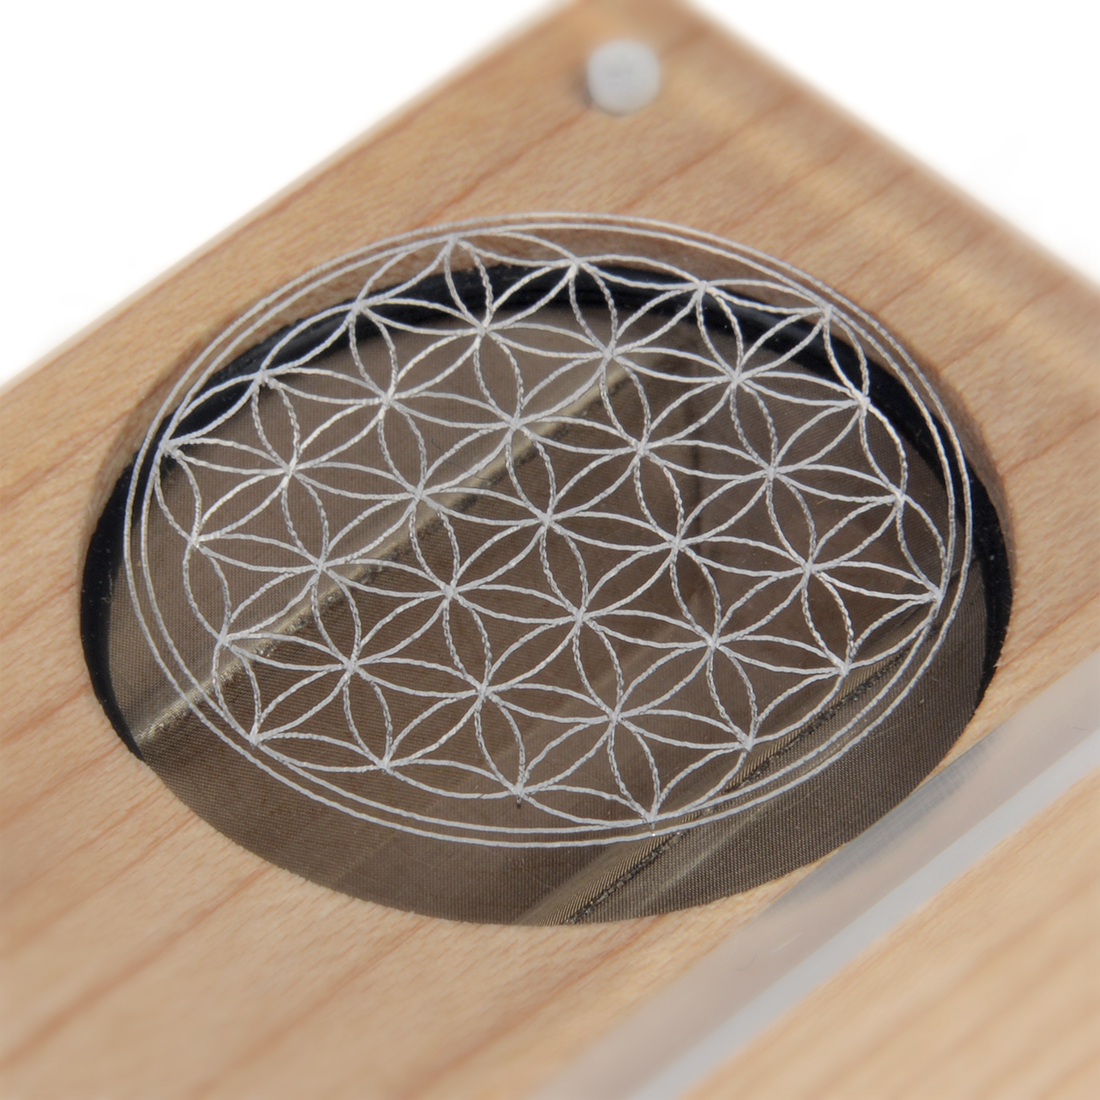 MAGIC FLIGHT LAUNCH BOX FLOWER OF LIFE